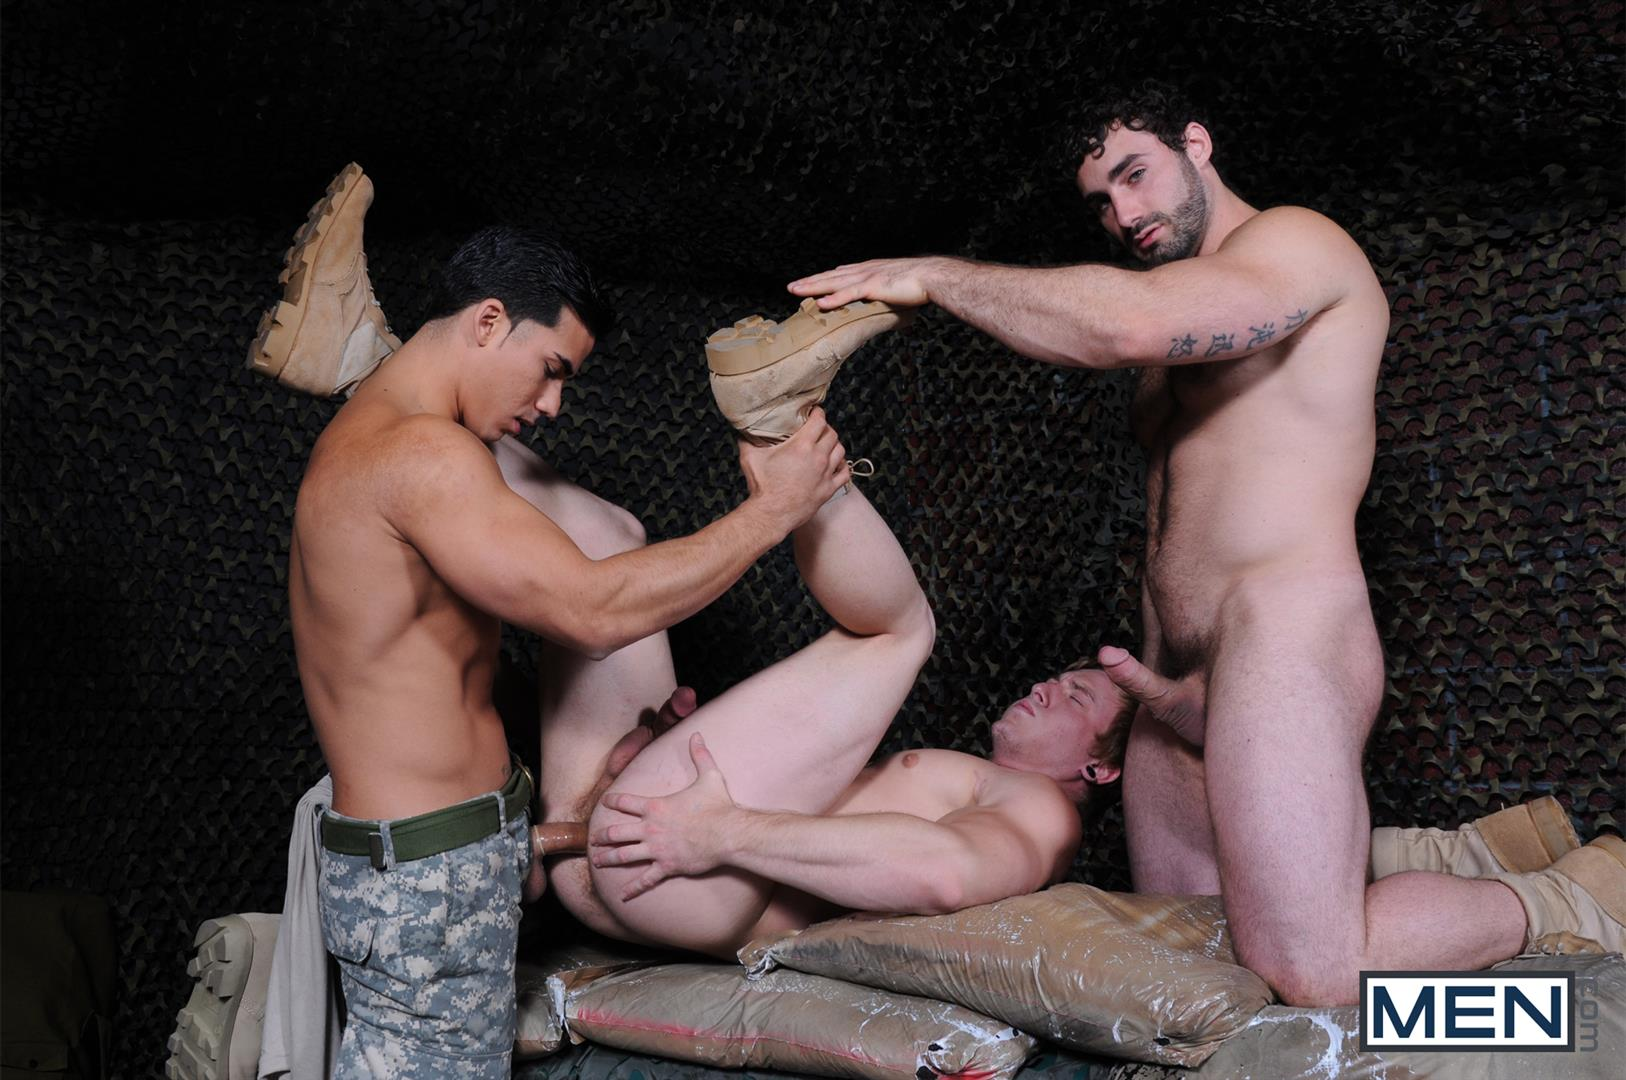 Men-Tour-of-Duty-Jaxton-Wheeler-and-Tom-Faulk-and-Topher-Di-Maggio-Army-Guys-Fucking-Amateur-Gay-Porn-10 Tom Faulk Getting Fucked by Topher DiMaggio and Jaxton Wheeler